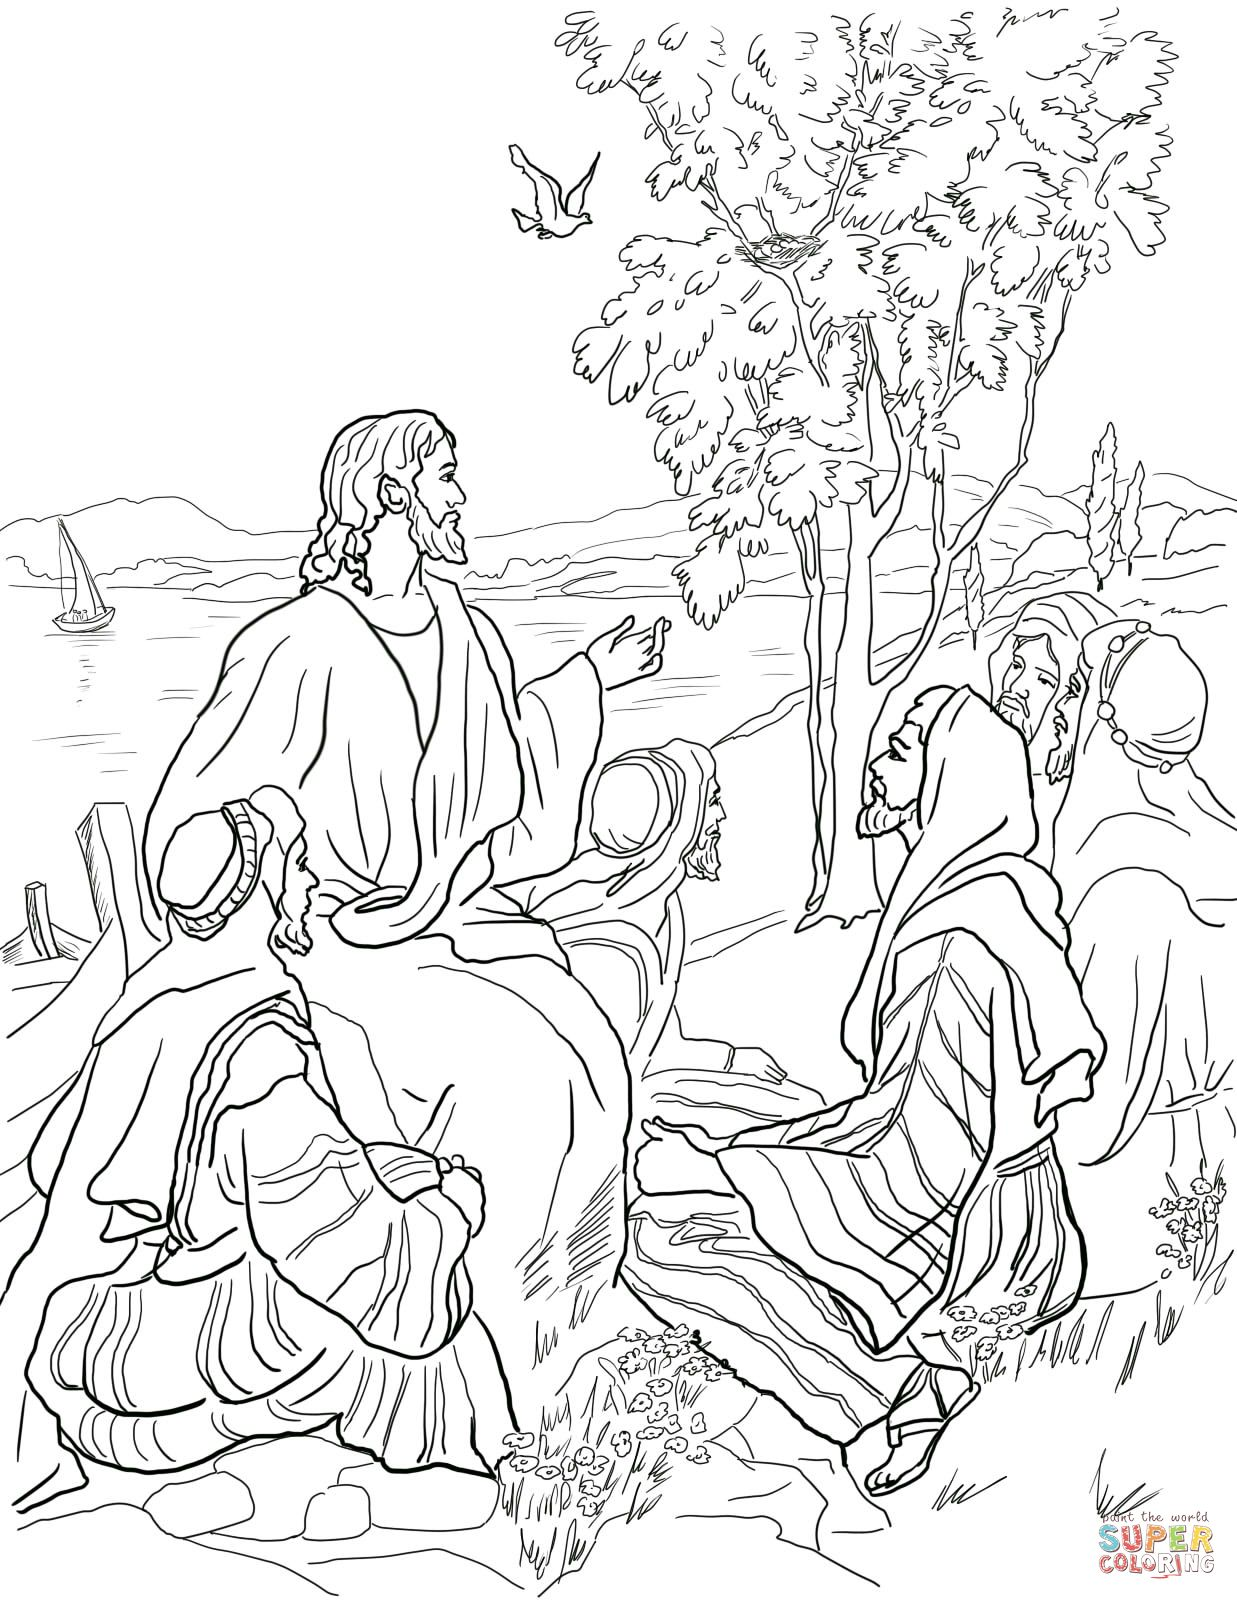 Parable Of Mustard Seed Coloring Page From Jesus Parables Category Select 22052 Printable Crafts Cartoons Nature Animals Bible And Many More